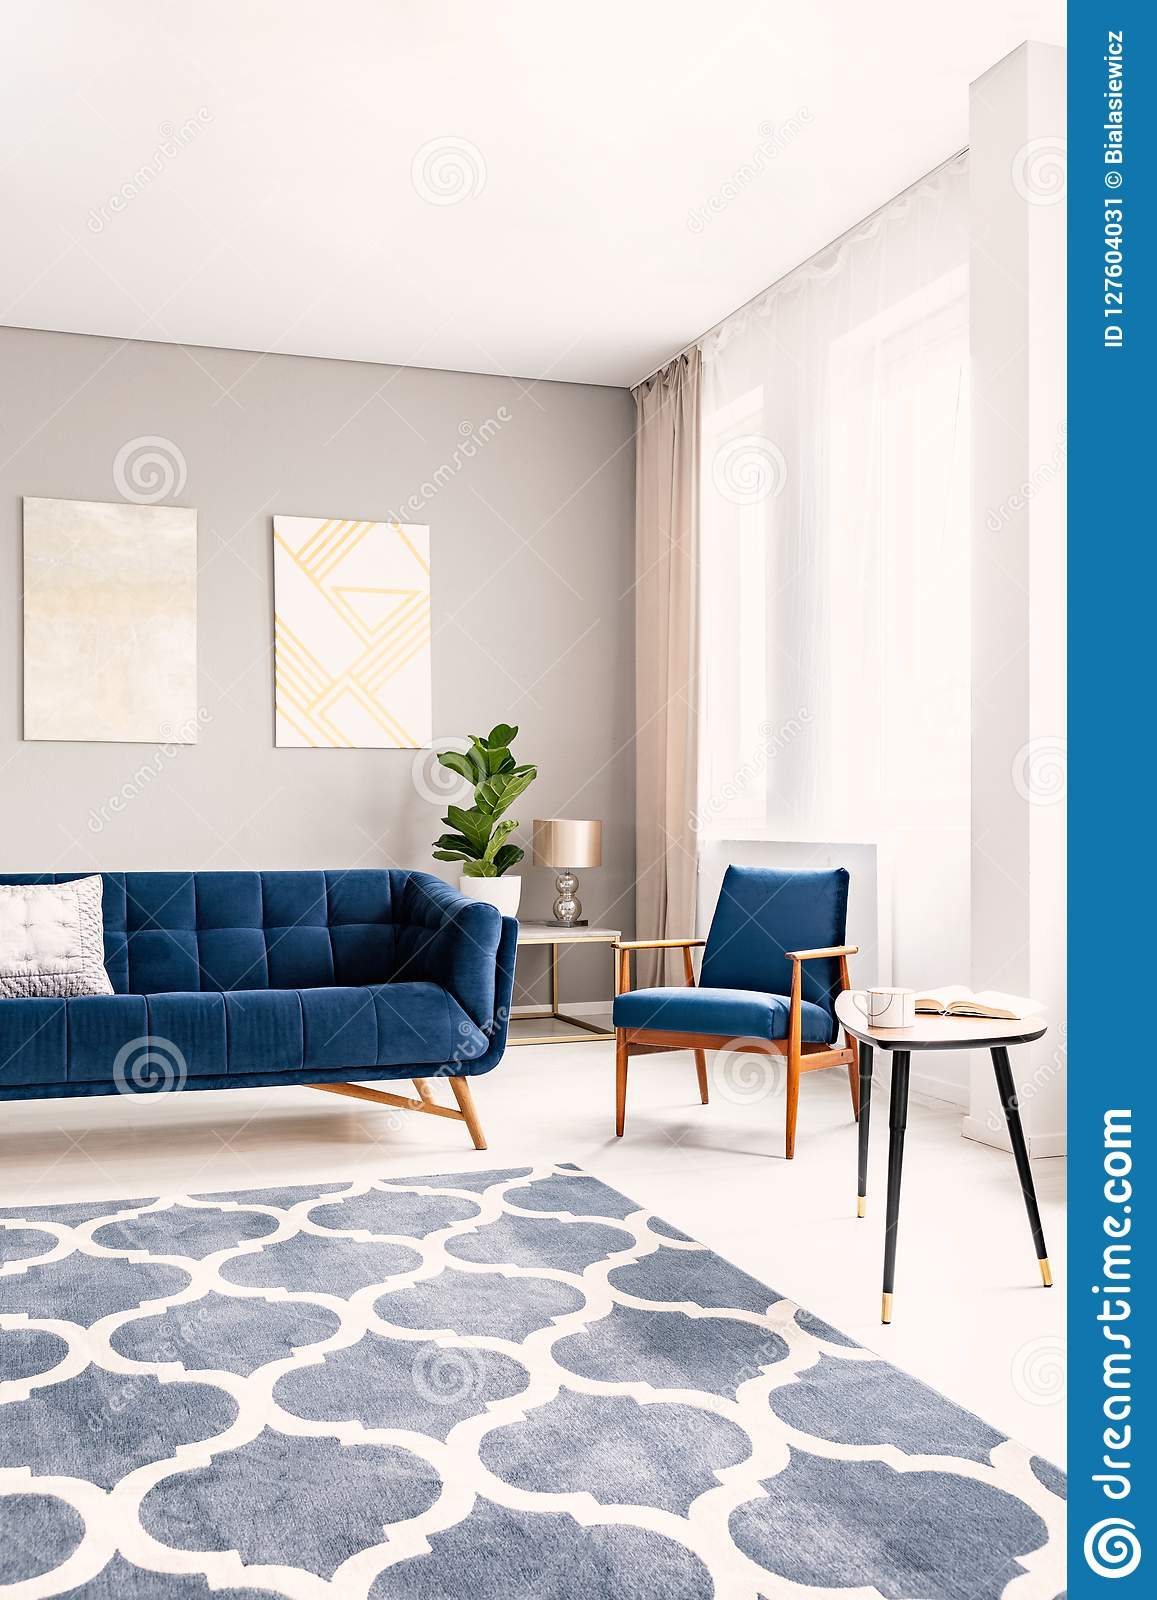 Elegant Living Room Interior With A Dark Blue Couch And A